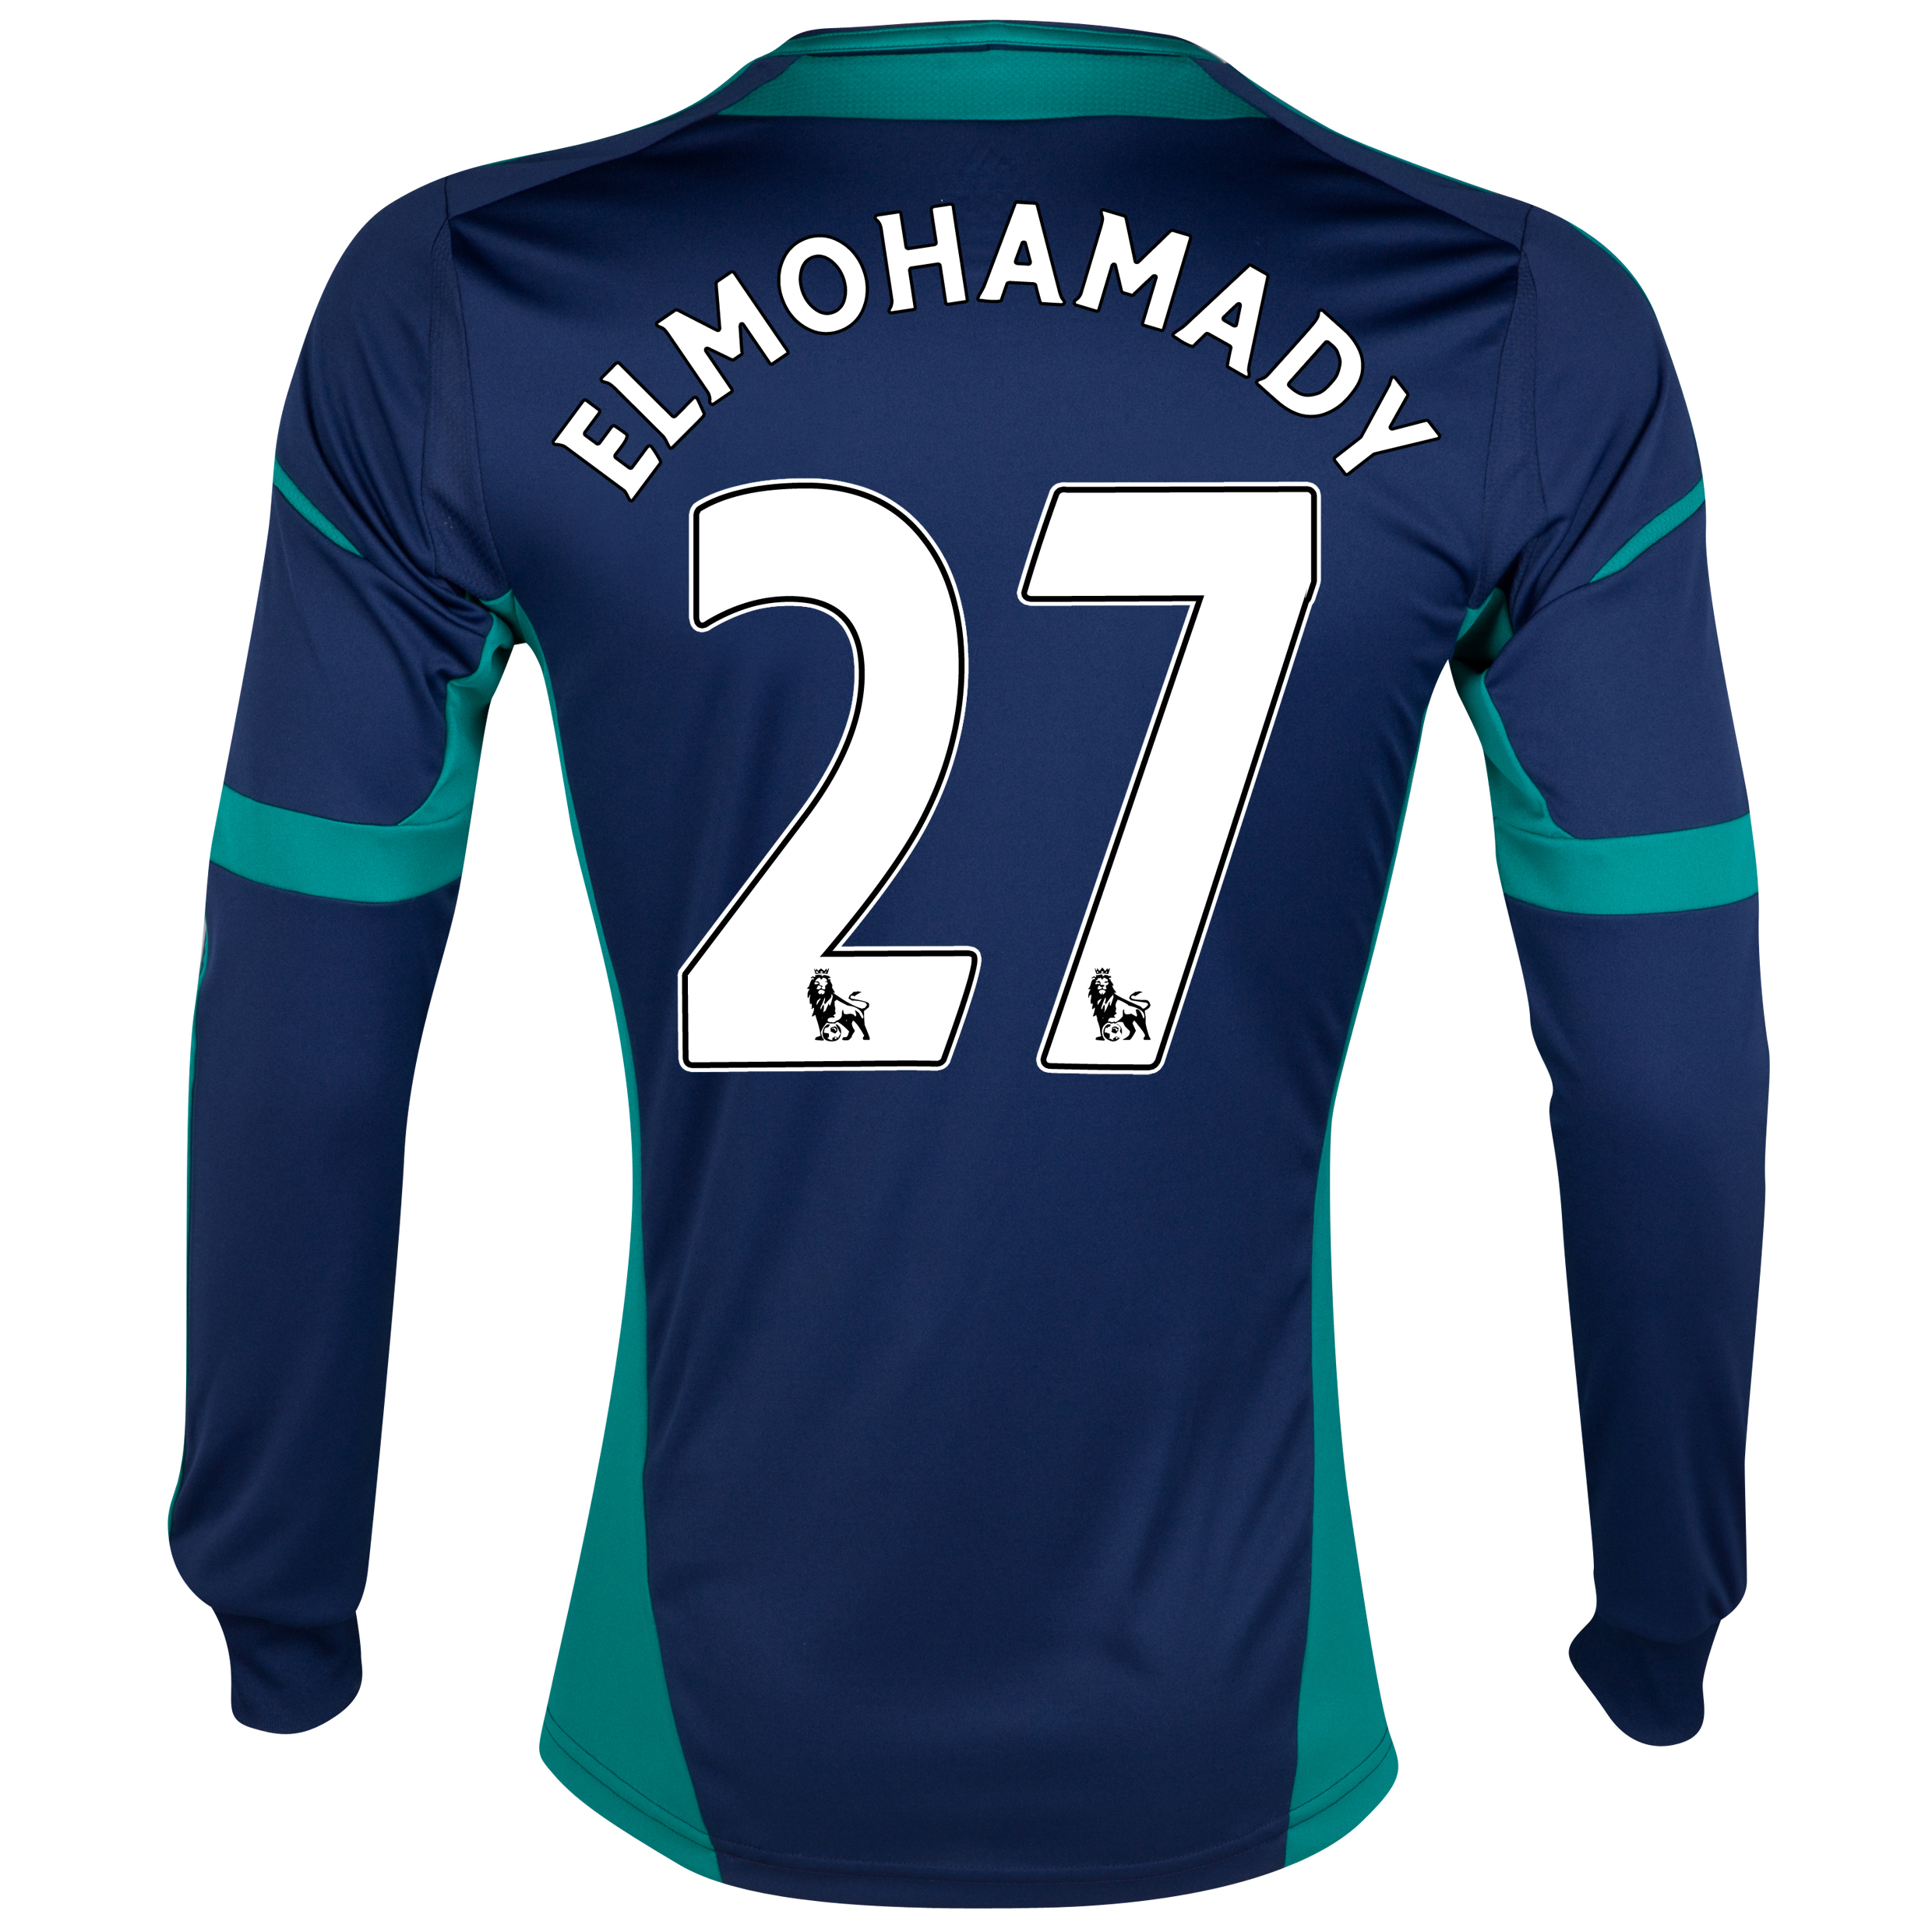 Sunderland Away Shirt 2012/13 - Long Sleeved with Elmohamady 27 printing